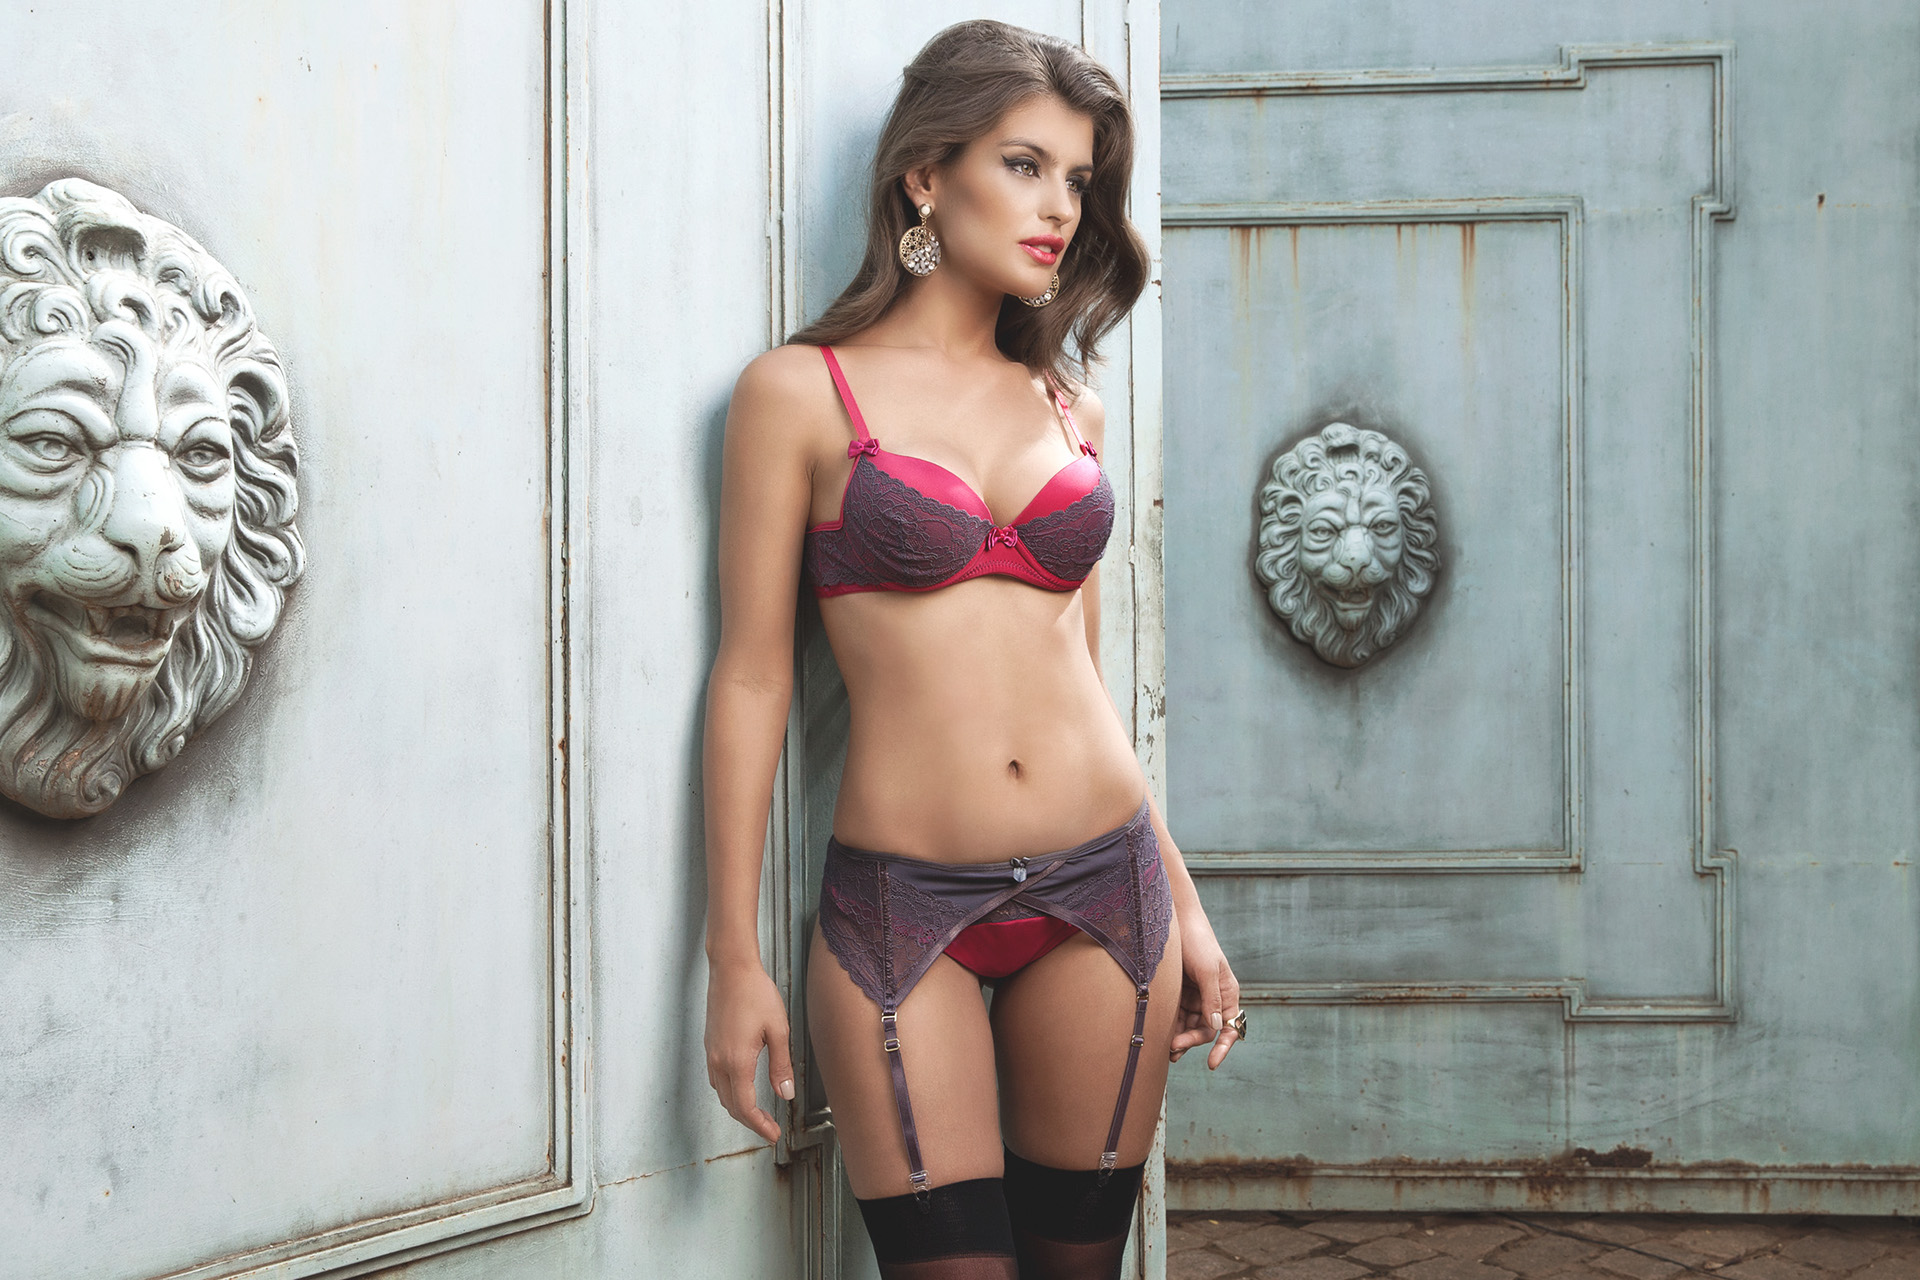 d000fa172 Winter 2015 Intima Passion lingerie on Behance